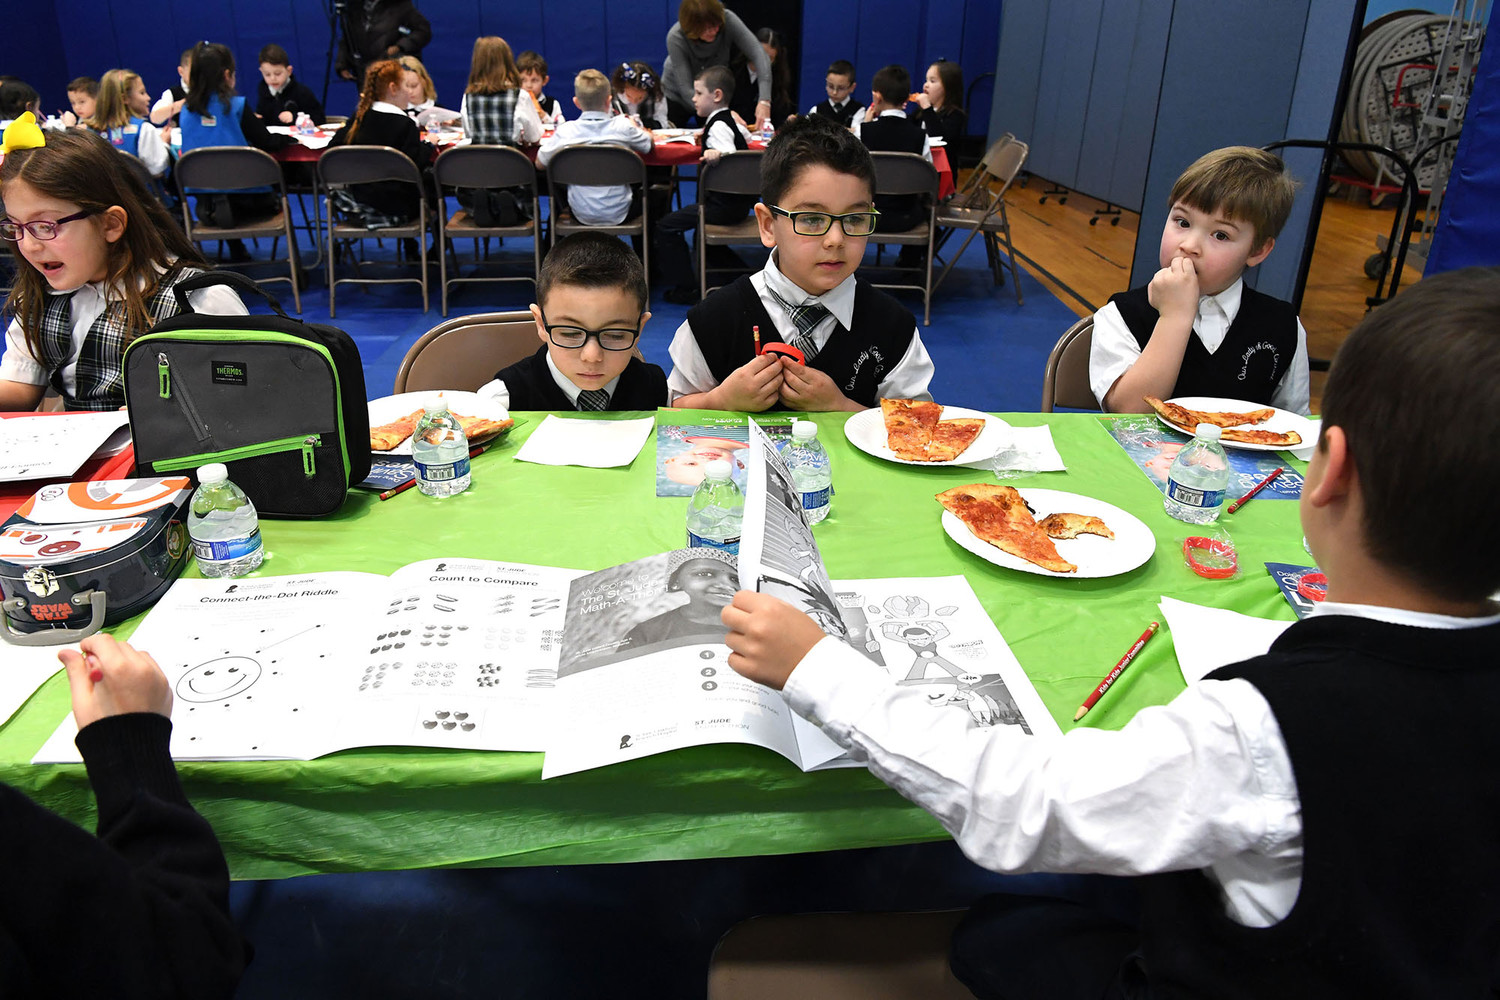 Students enjoy pizza donated by Denino's on Staten Island as they seek answers.